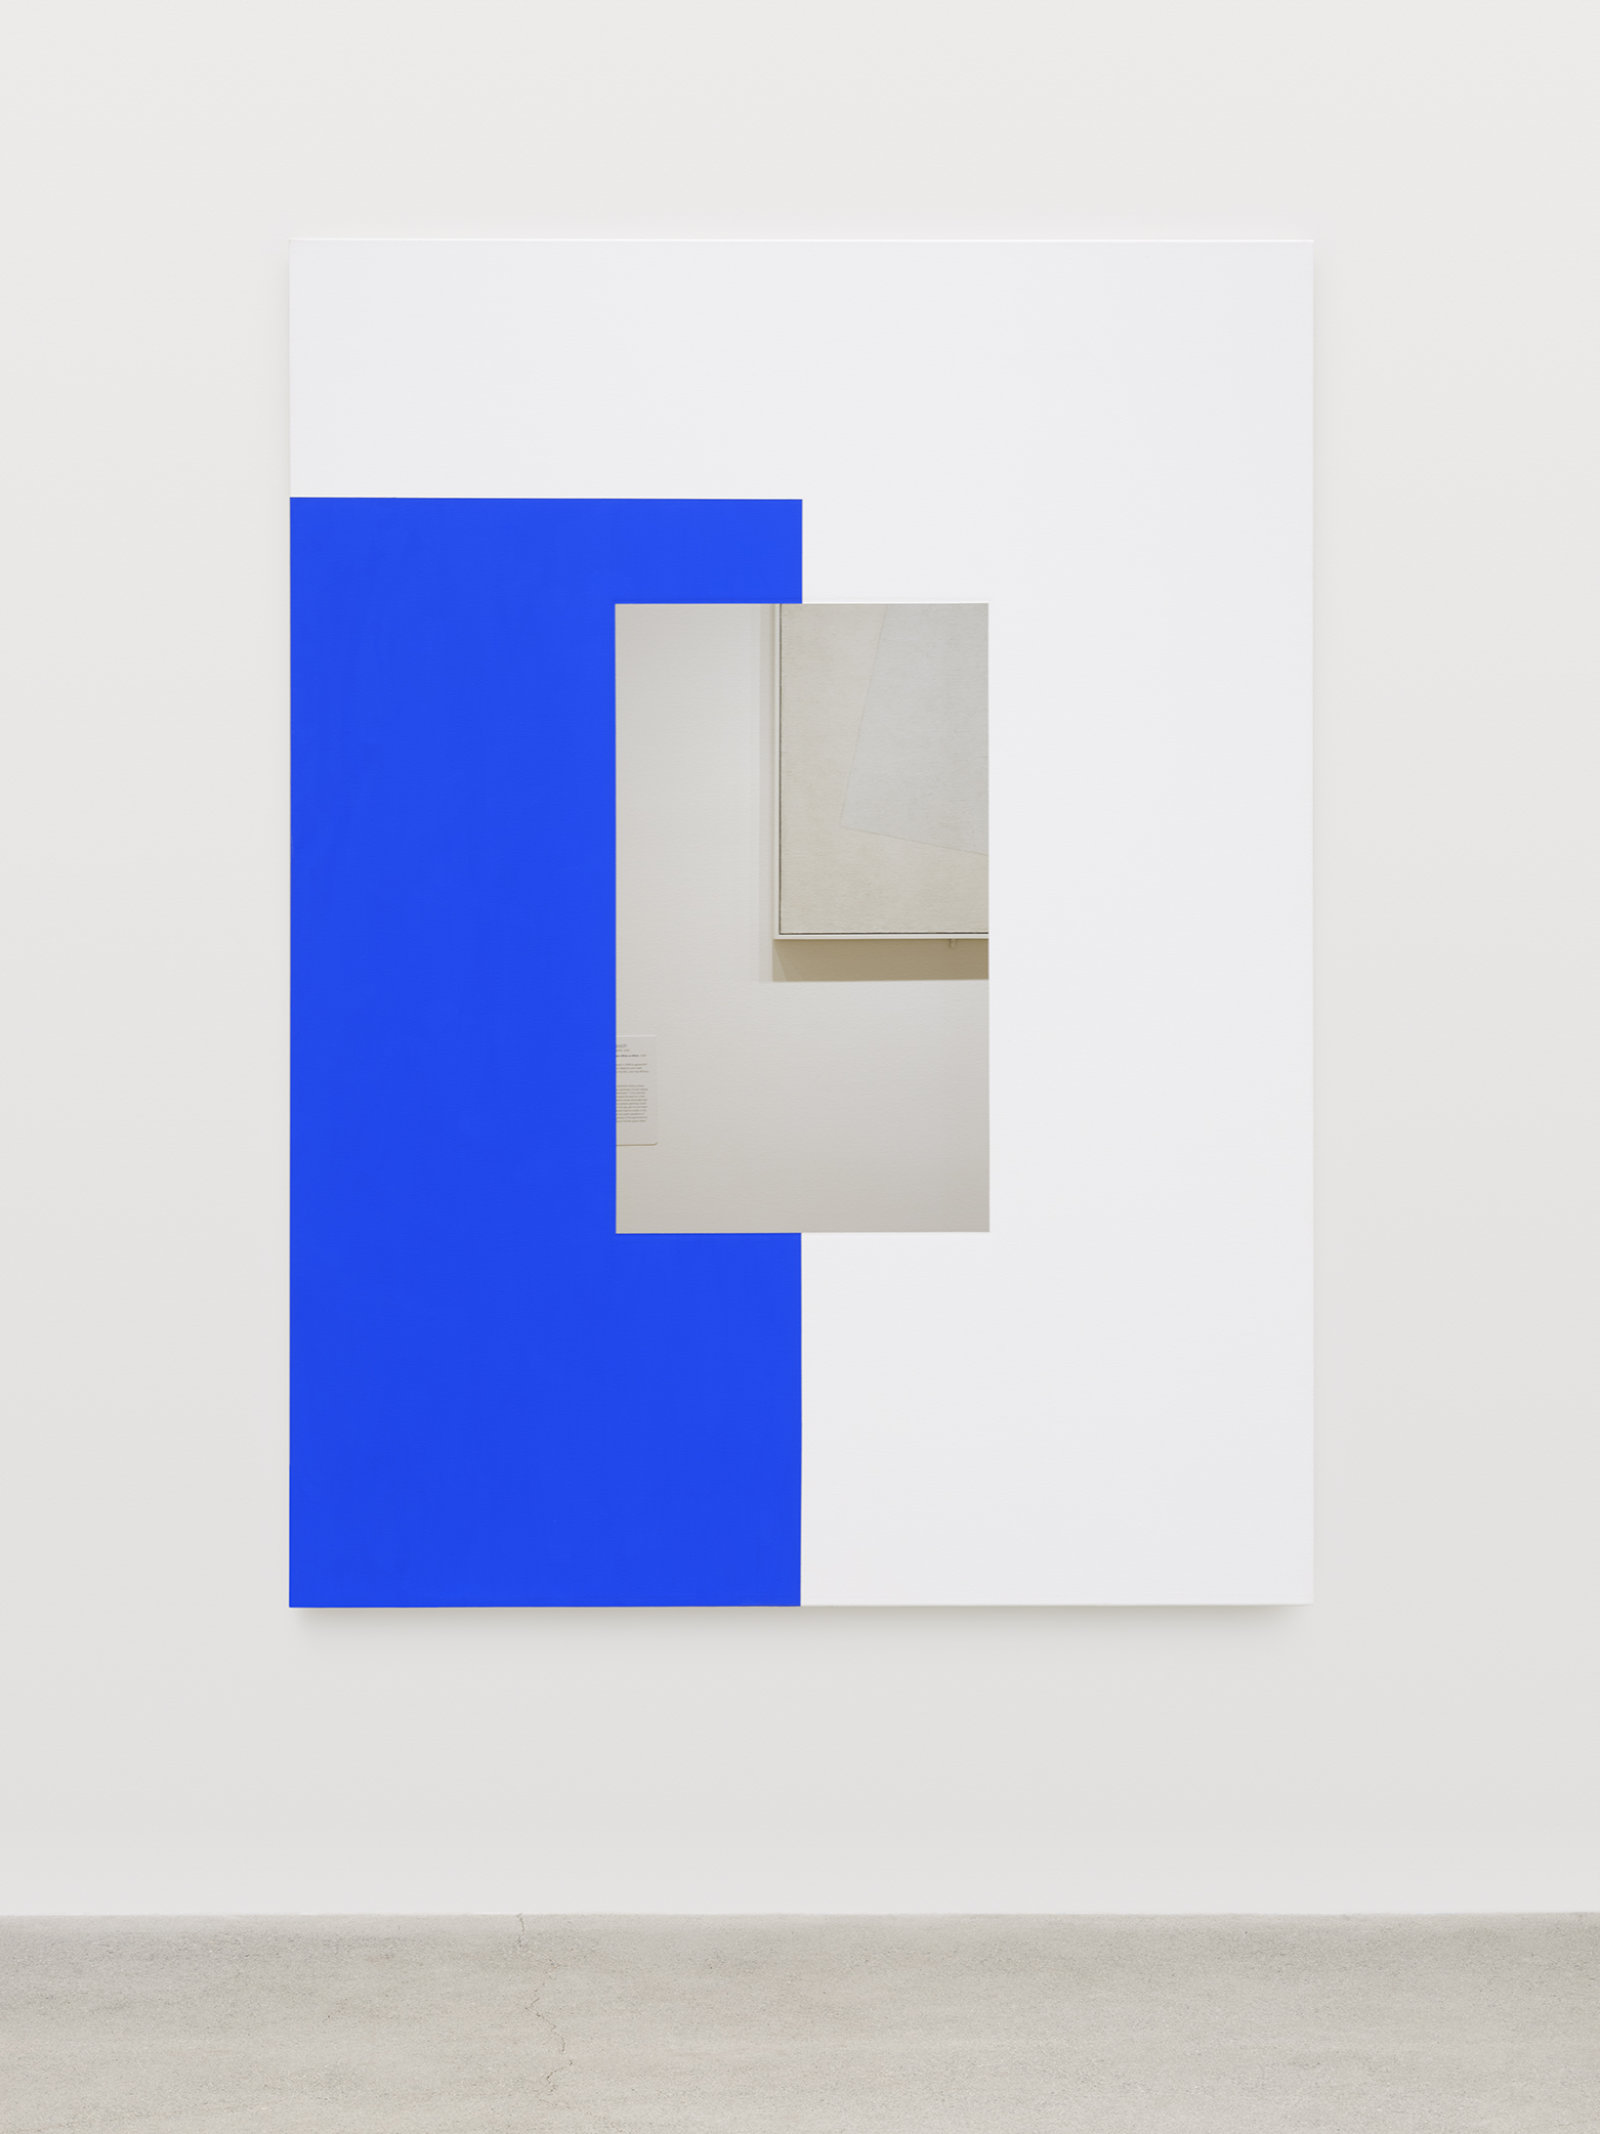 Ian Wallace, Abstract Painting (Blue on White), 2011, photolaminate and acrylic on canvas, 80 x 60 in. (203 x 152 cm)